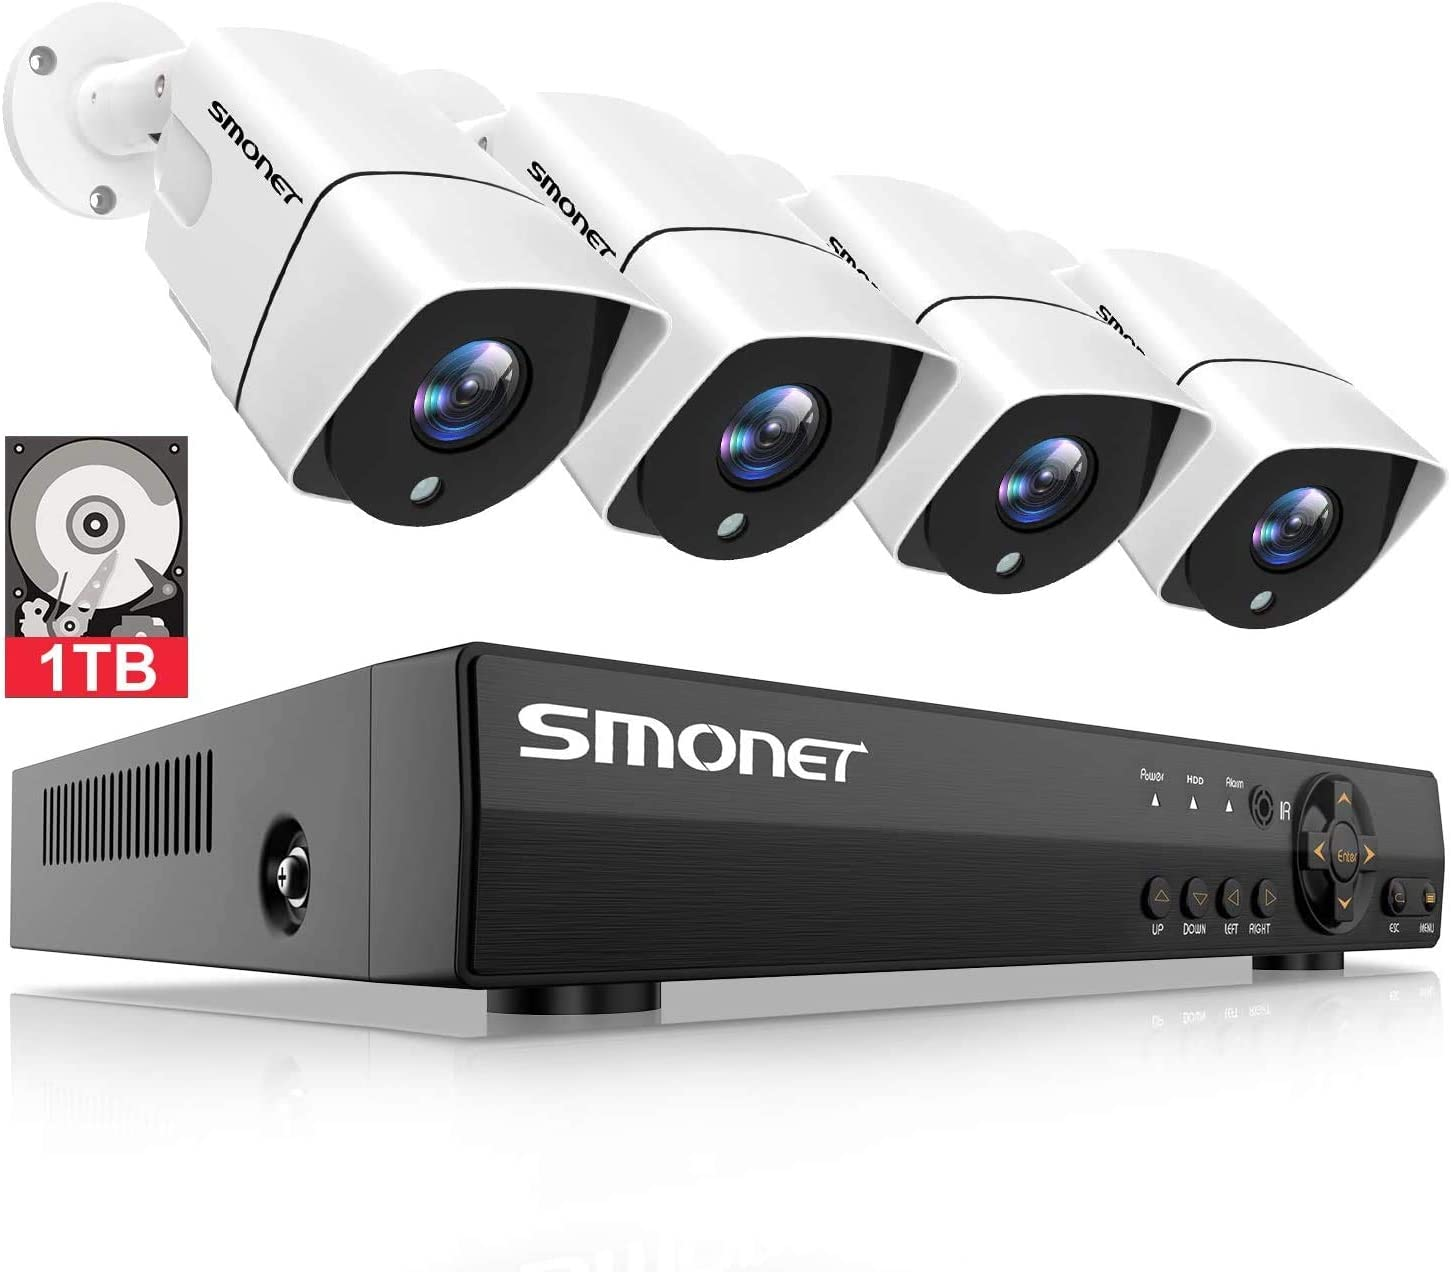 Full HD Security Camera System 1080P,SMONET 4 Channel Home Security Camera System 1TB Hard Drive ,4pcs 2MP Outdoor Cameras,Super Night Vision,P2P,Easy Remote View,Free APP,NO Monthly Fee